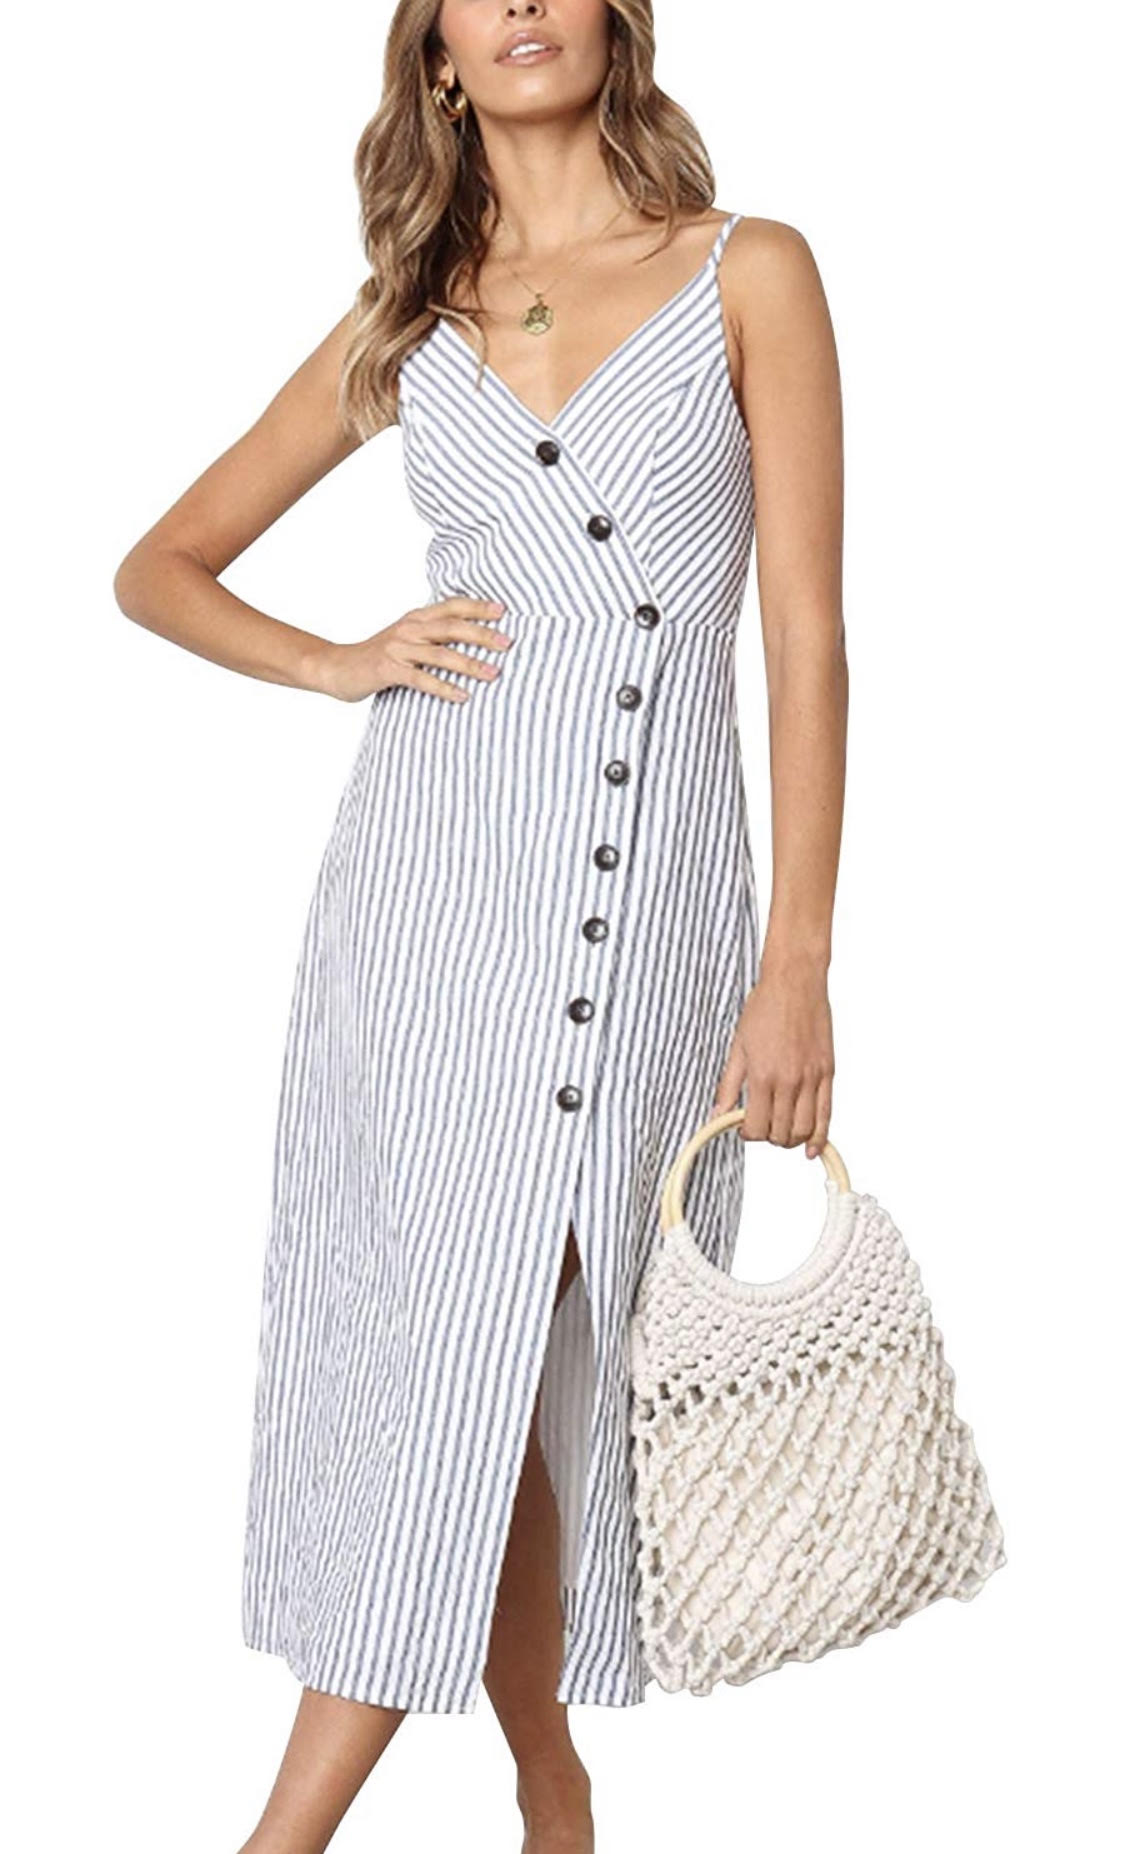 Blooming Jelly Womens V Neck Dress Sleeveless Spaghetti Strap Button Down Striped Summer Casual Midi Dress